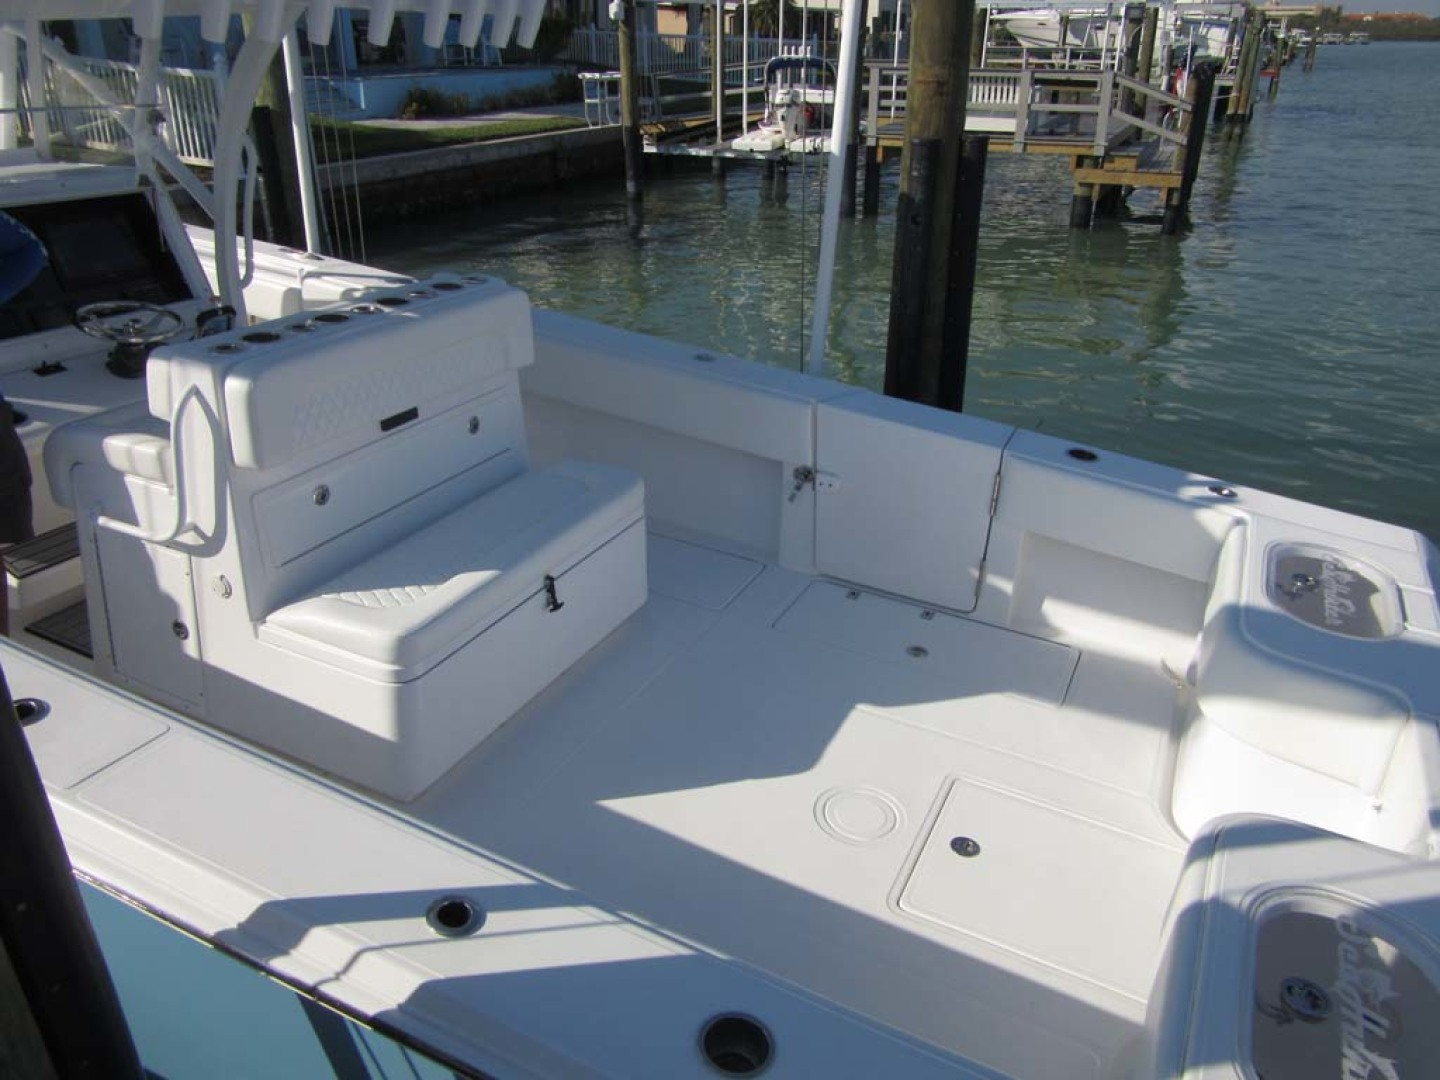 SeaHunter-39 Center Console 2017-SQUEEZE PLAY II Madeira Beach-Florida-United States-Cockpit-1117913 | Thumbnail